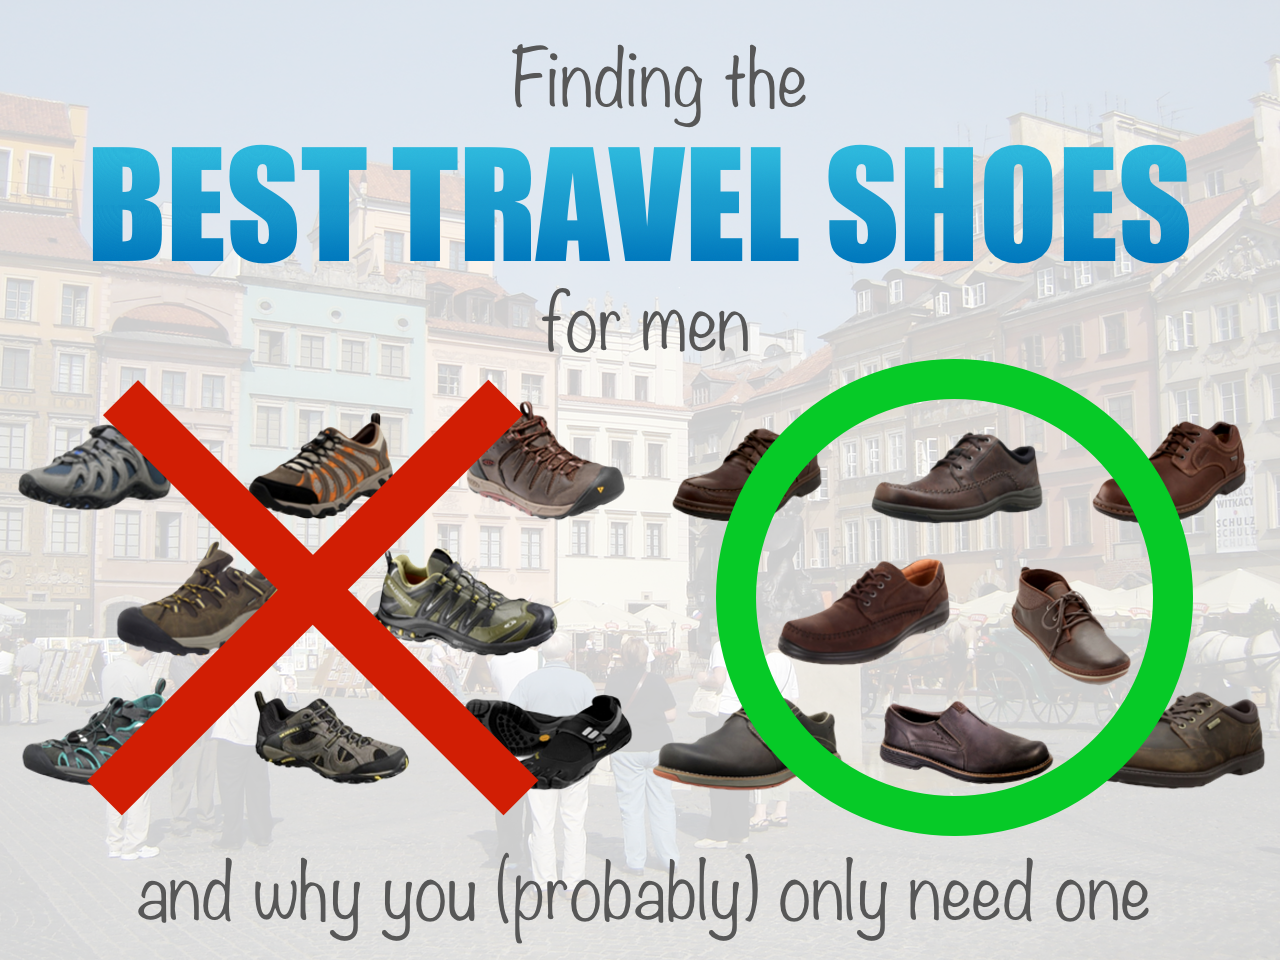 Finding the best travel shoes for men